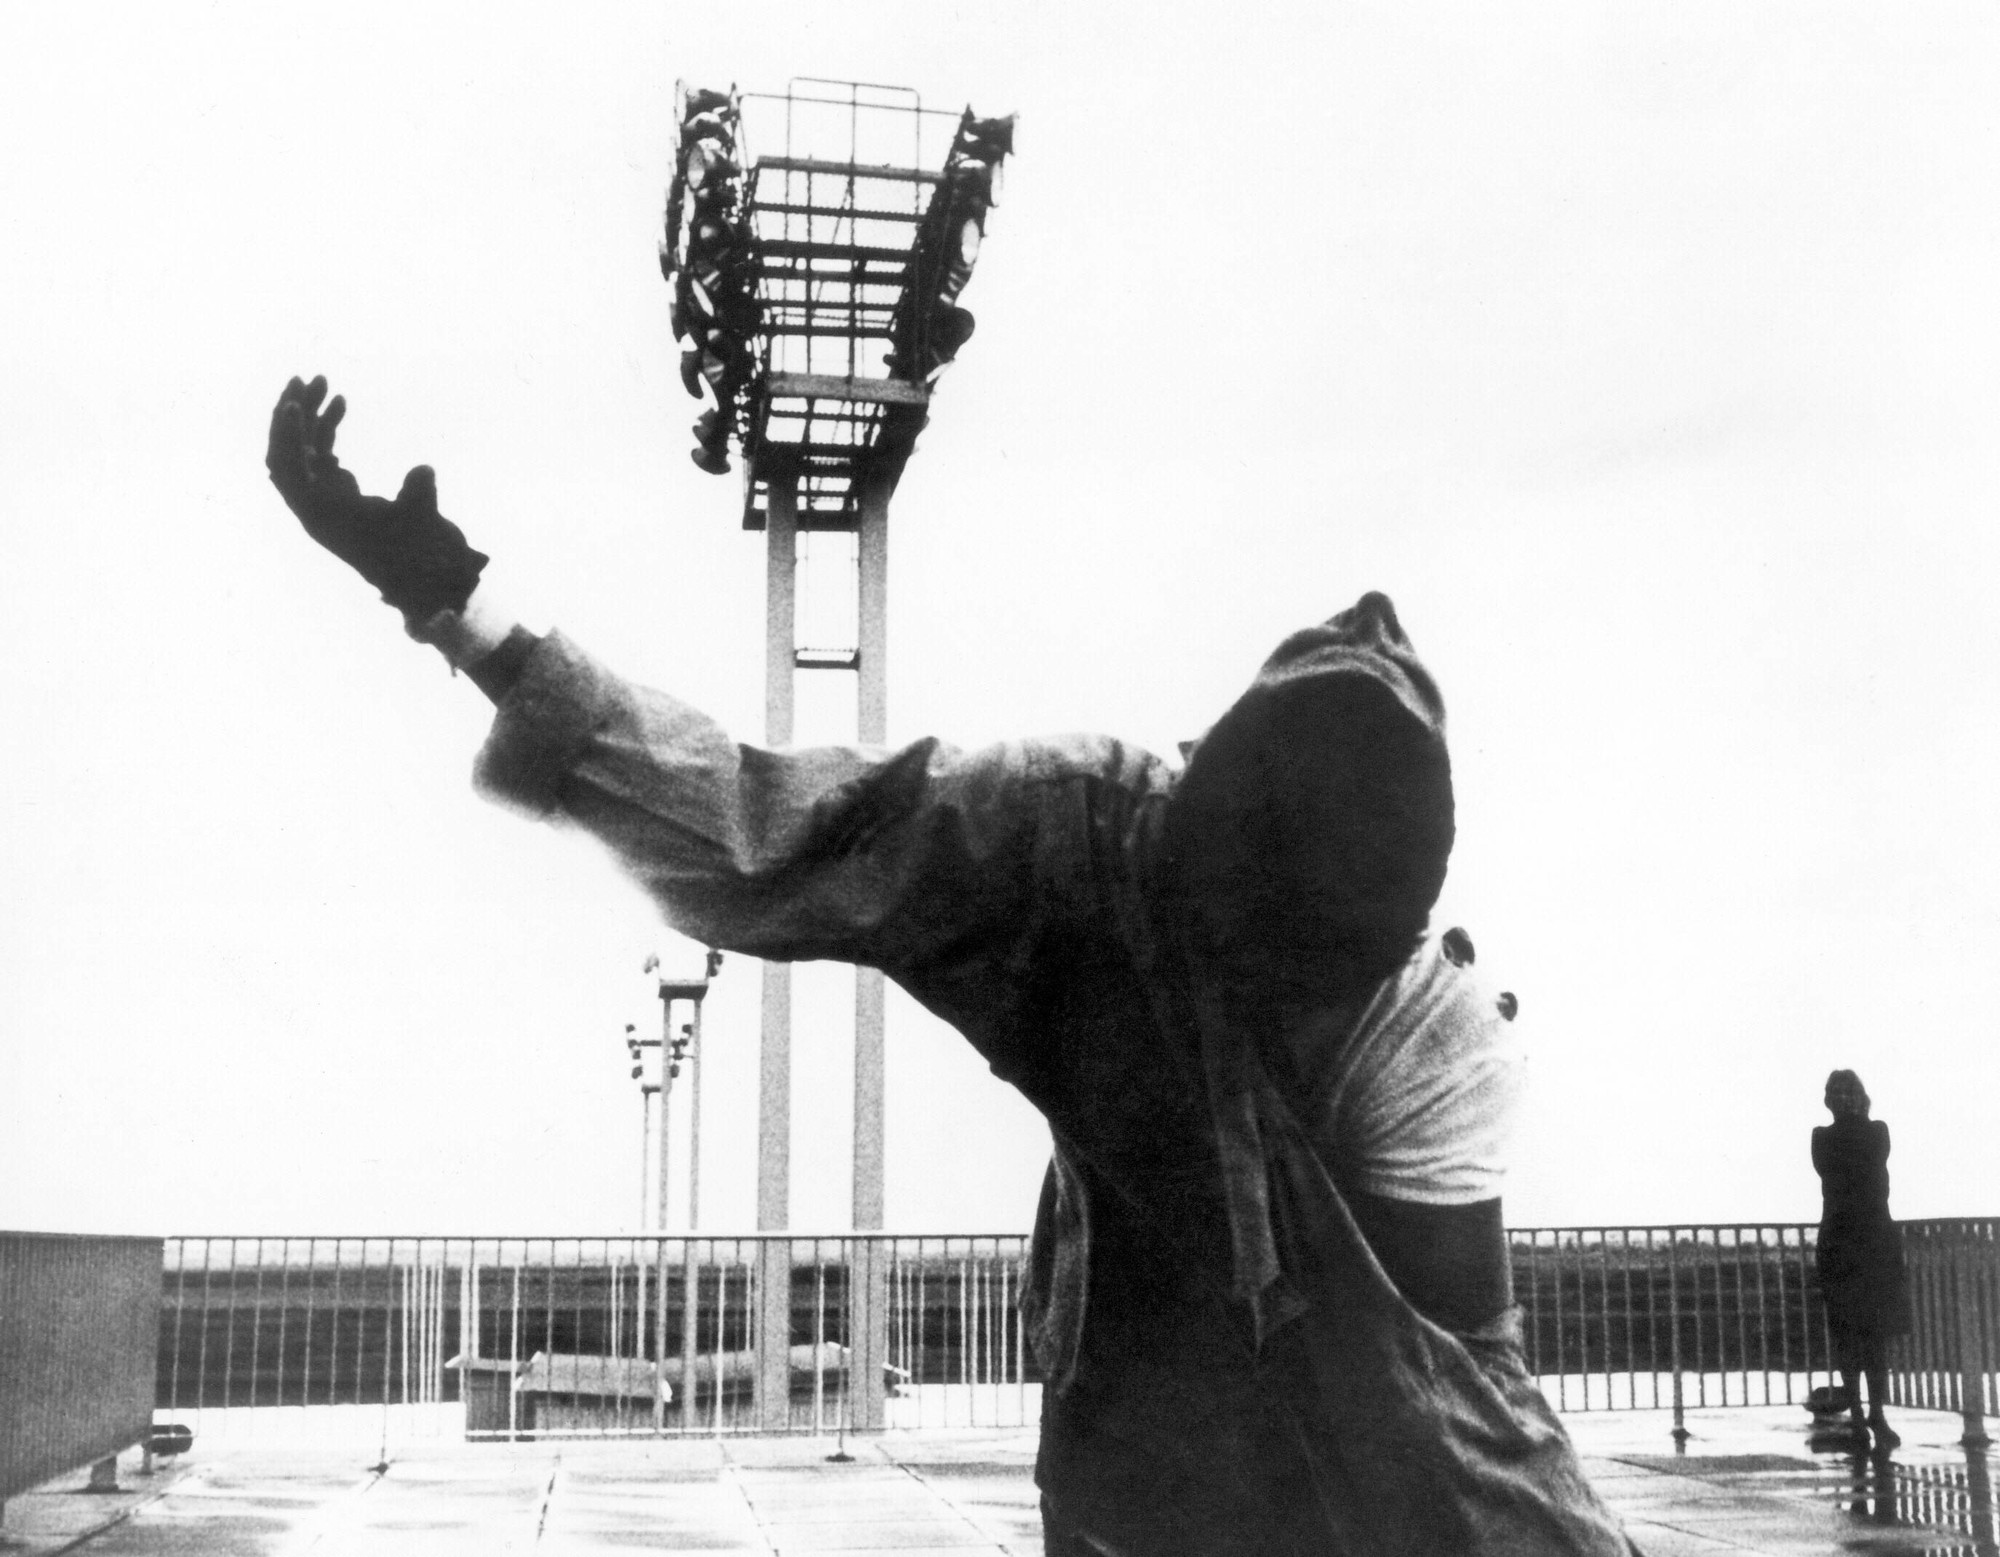 La Jetée. 1962. France. Written and directed by Chris Marker. Courtesy of Photofest